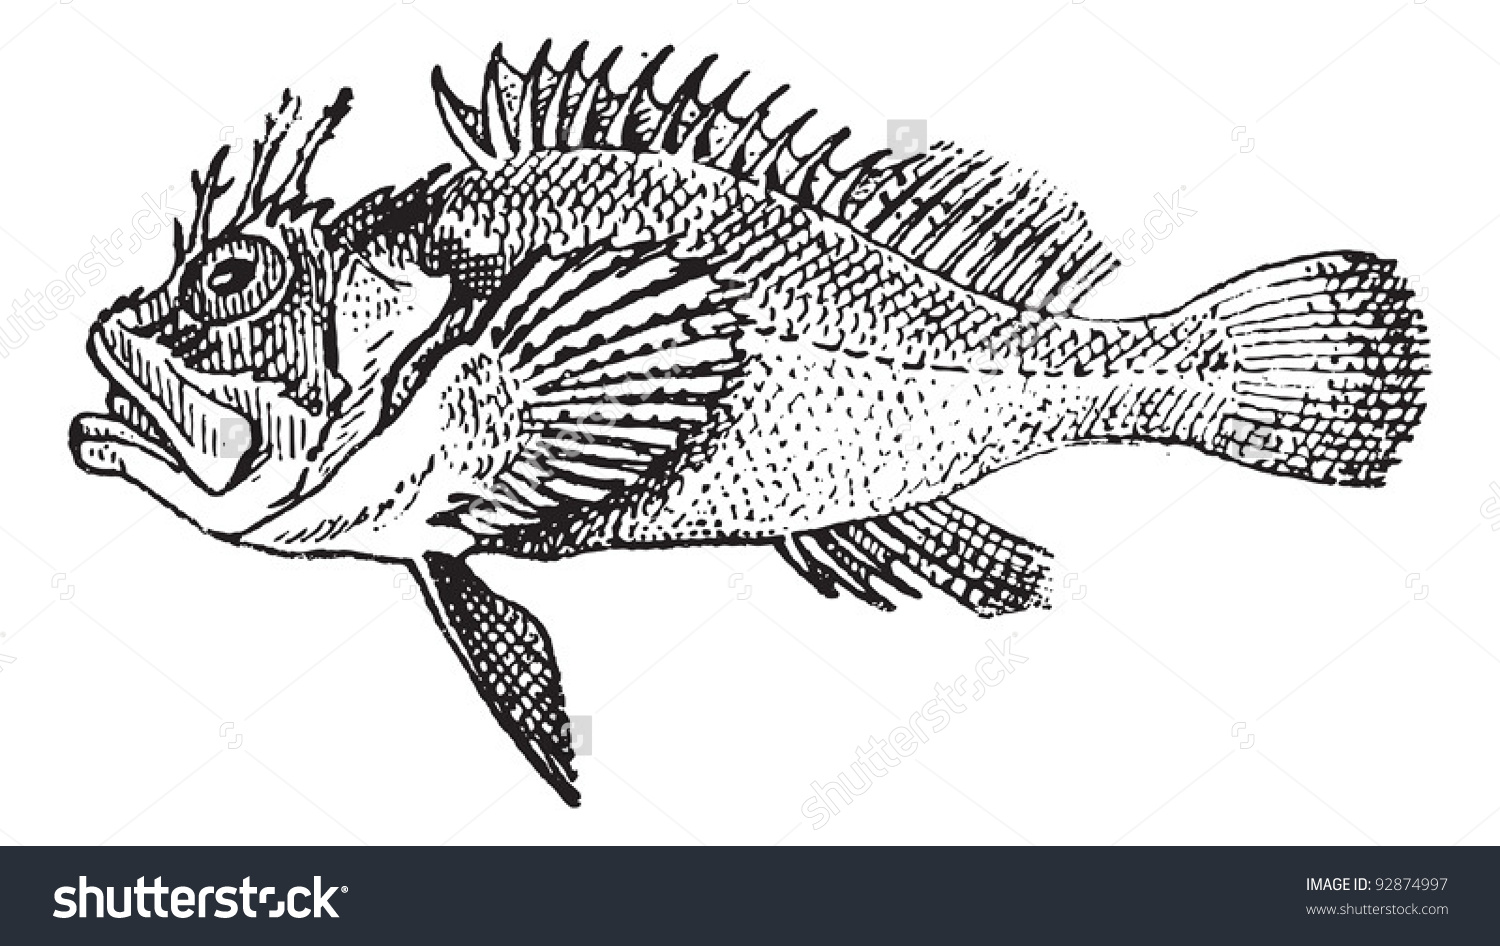 Rockfish Or Stonefish, Vintage Engraved Illustration. Dictionary.